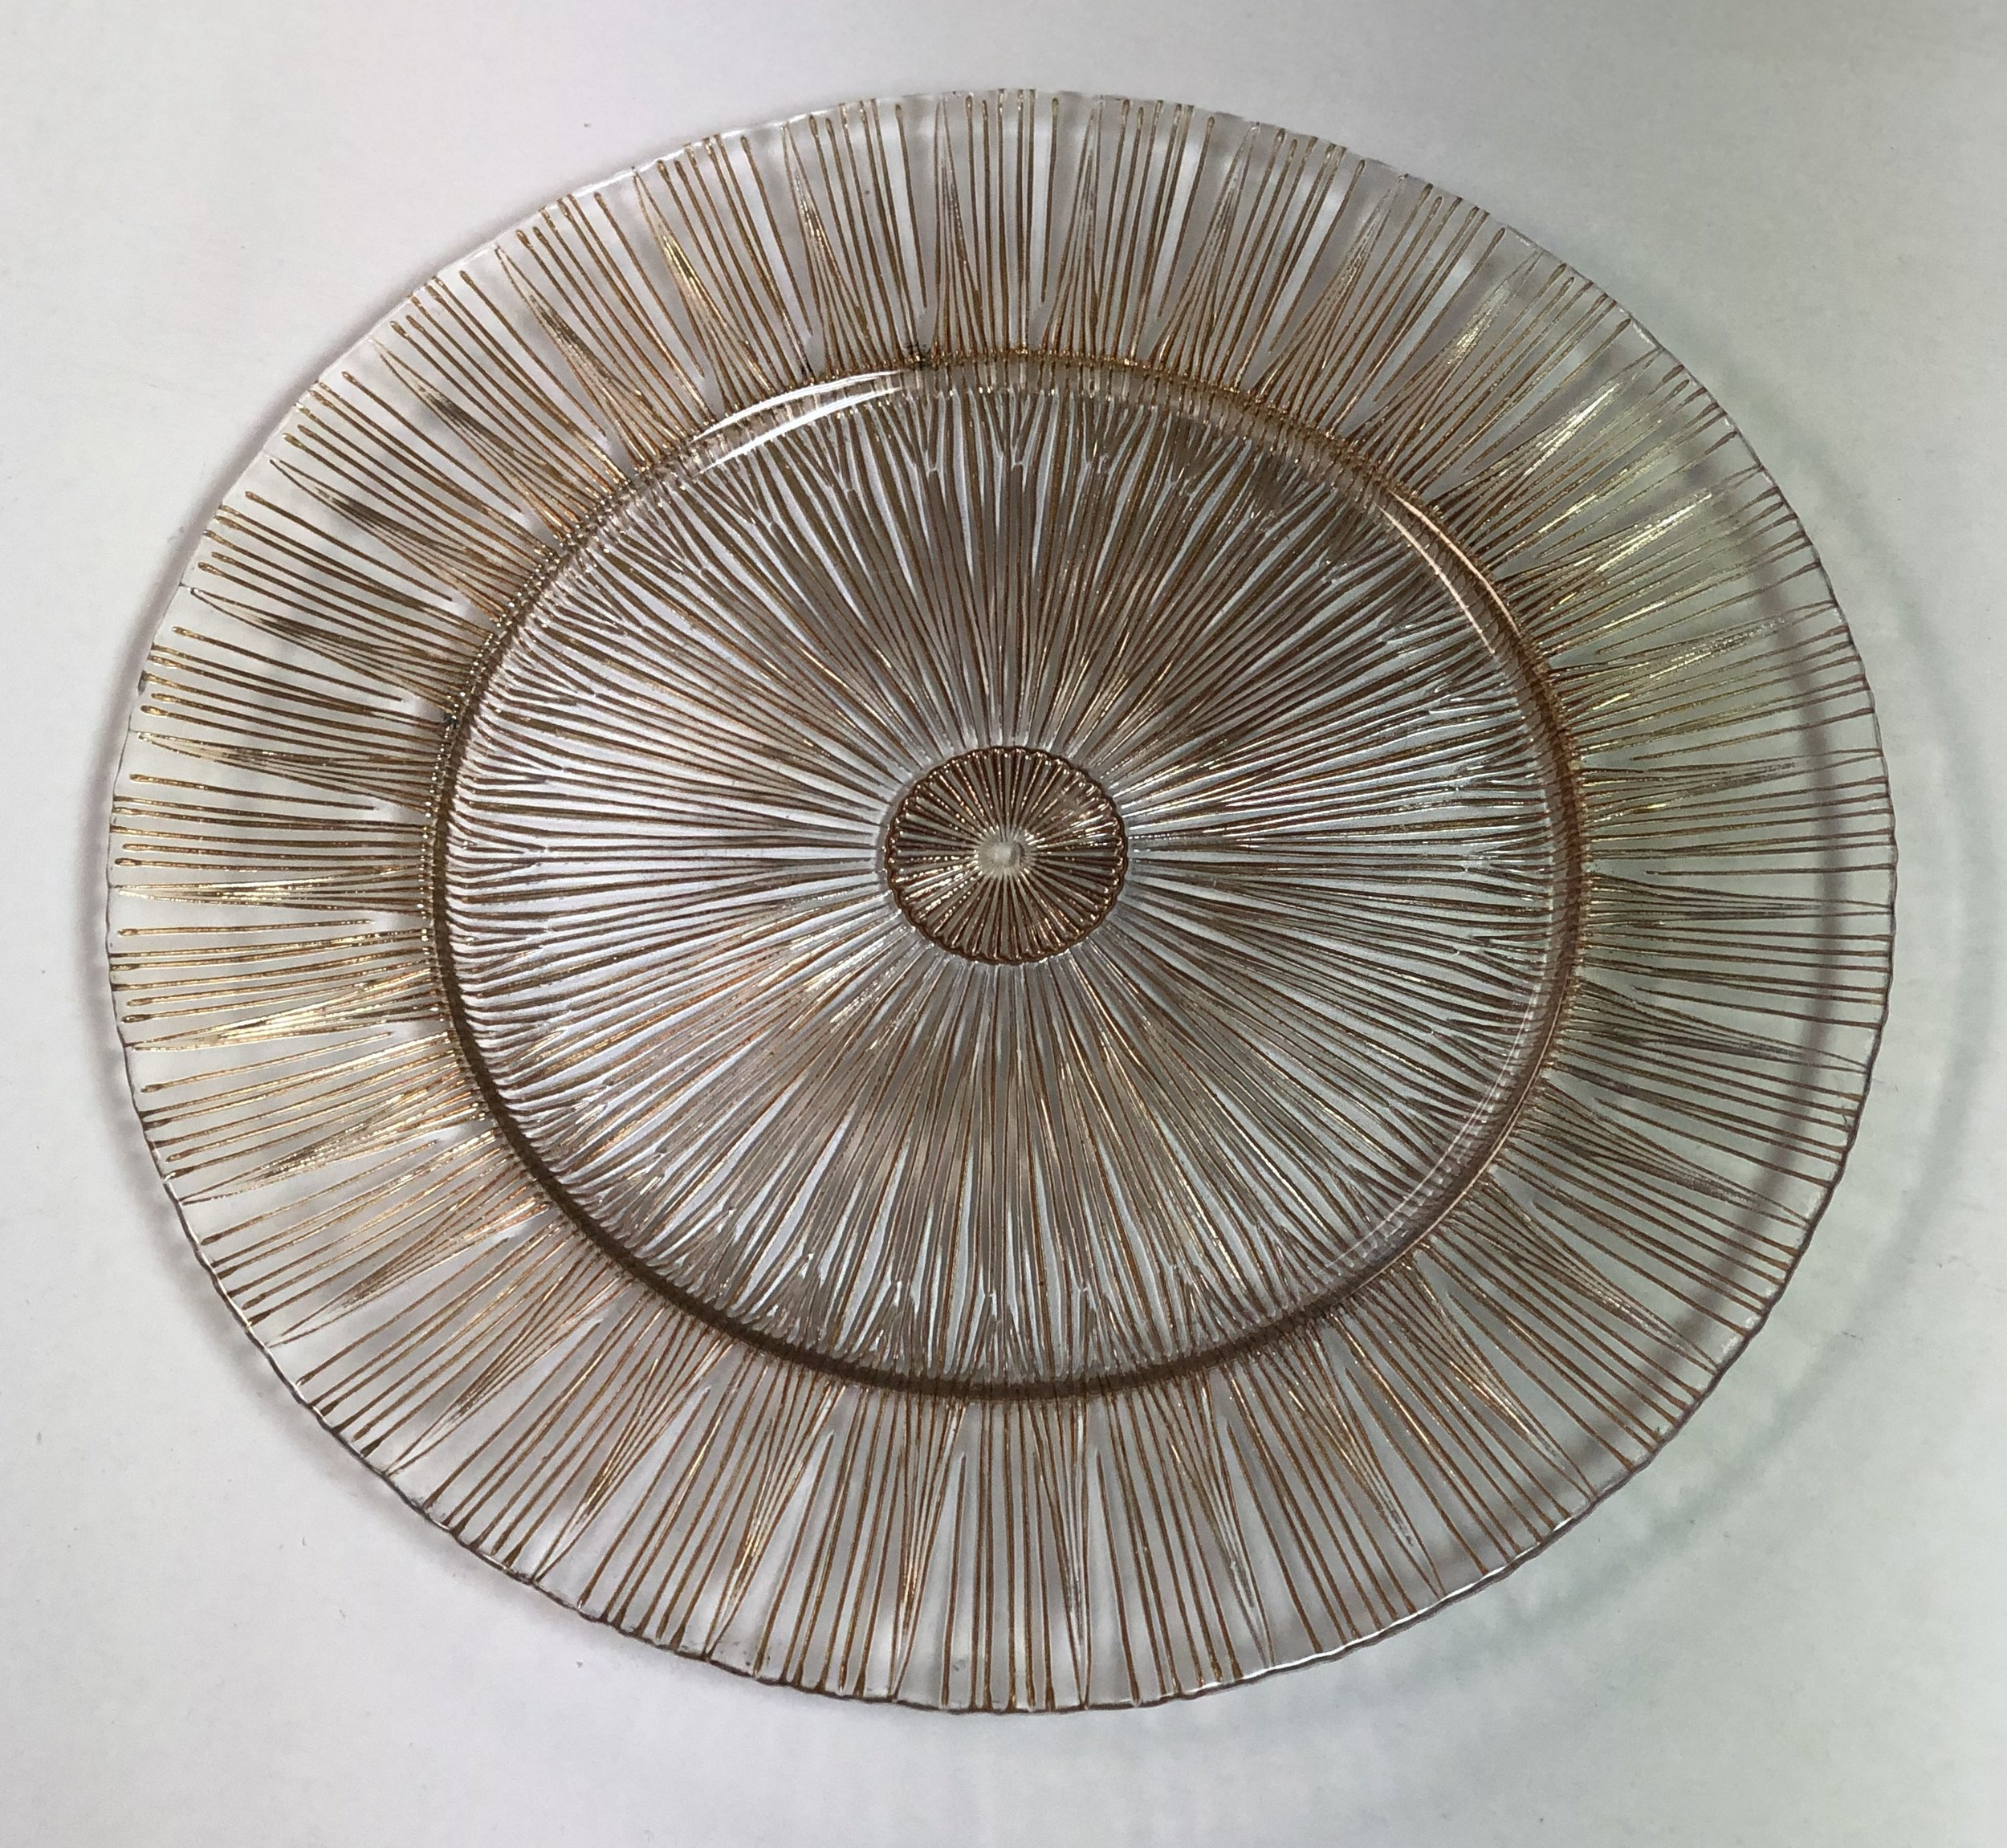 Stardust Glass Charger